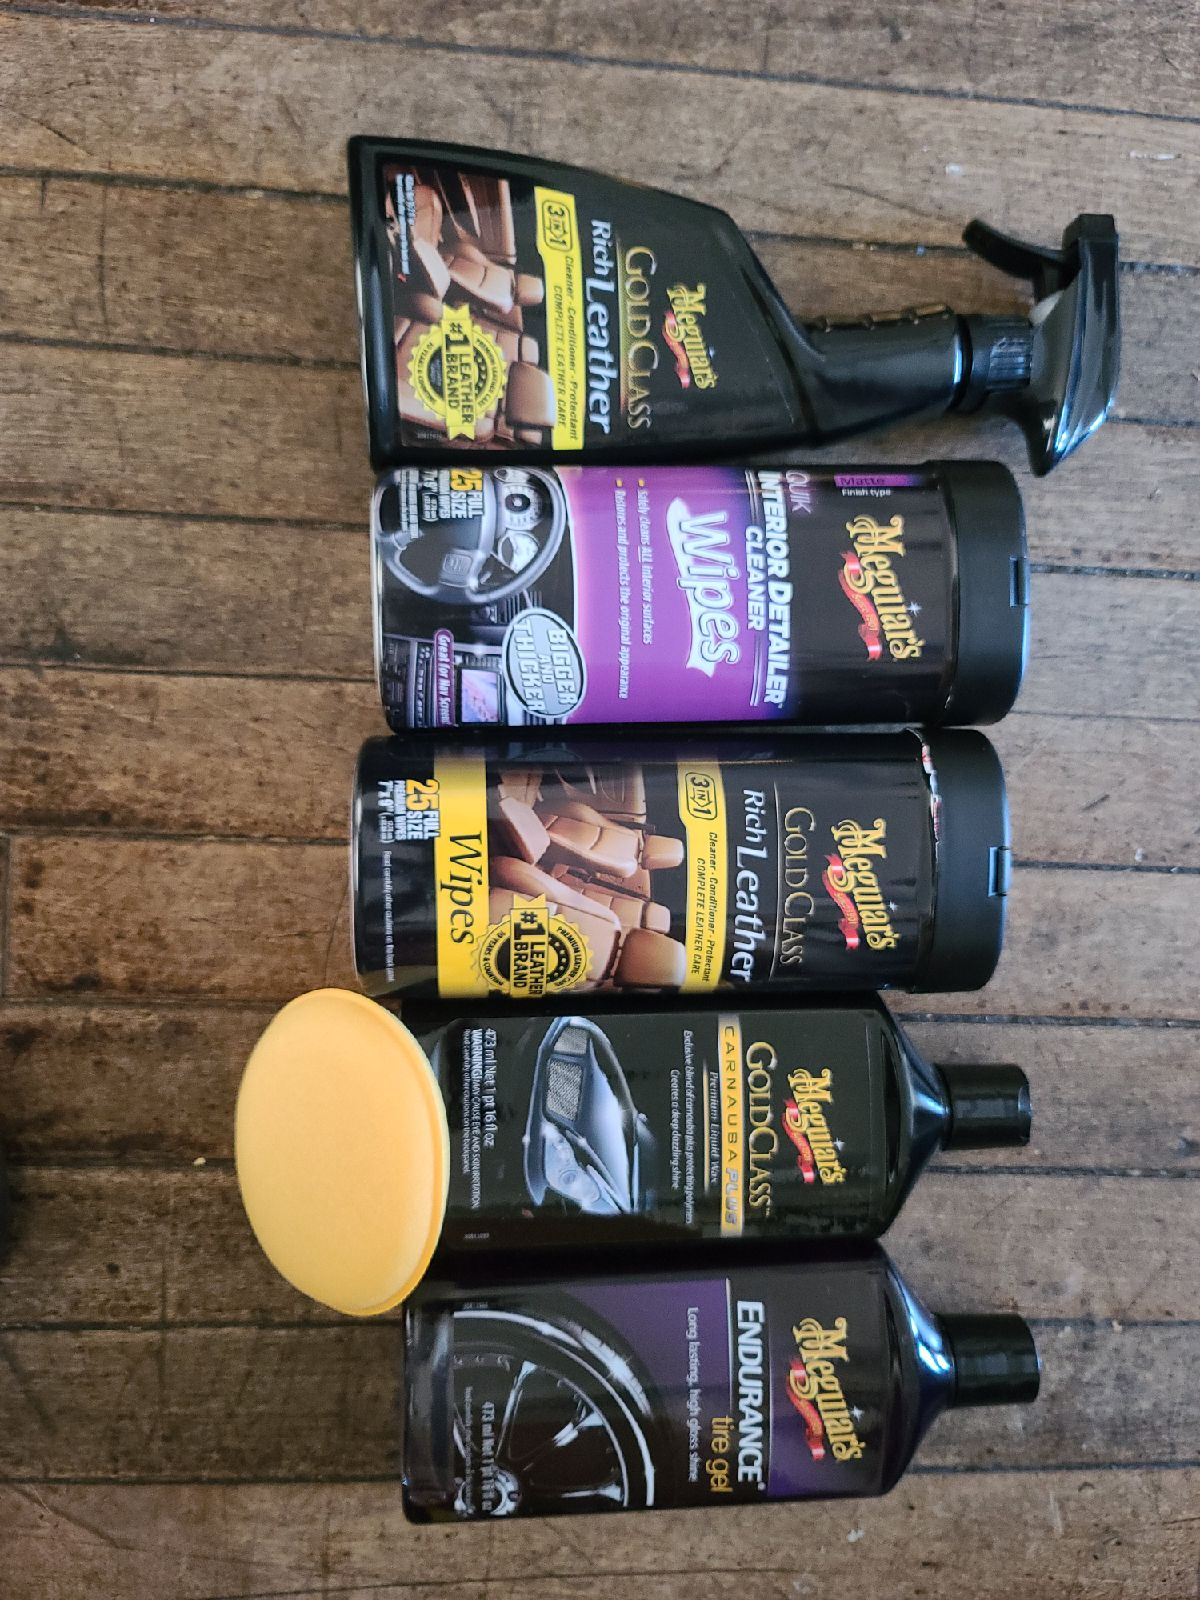 Meguiars leather care car clean up day